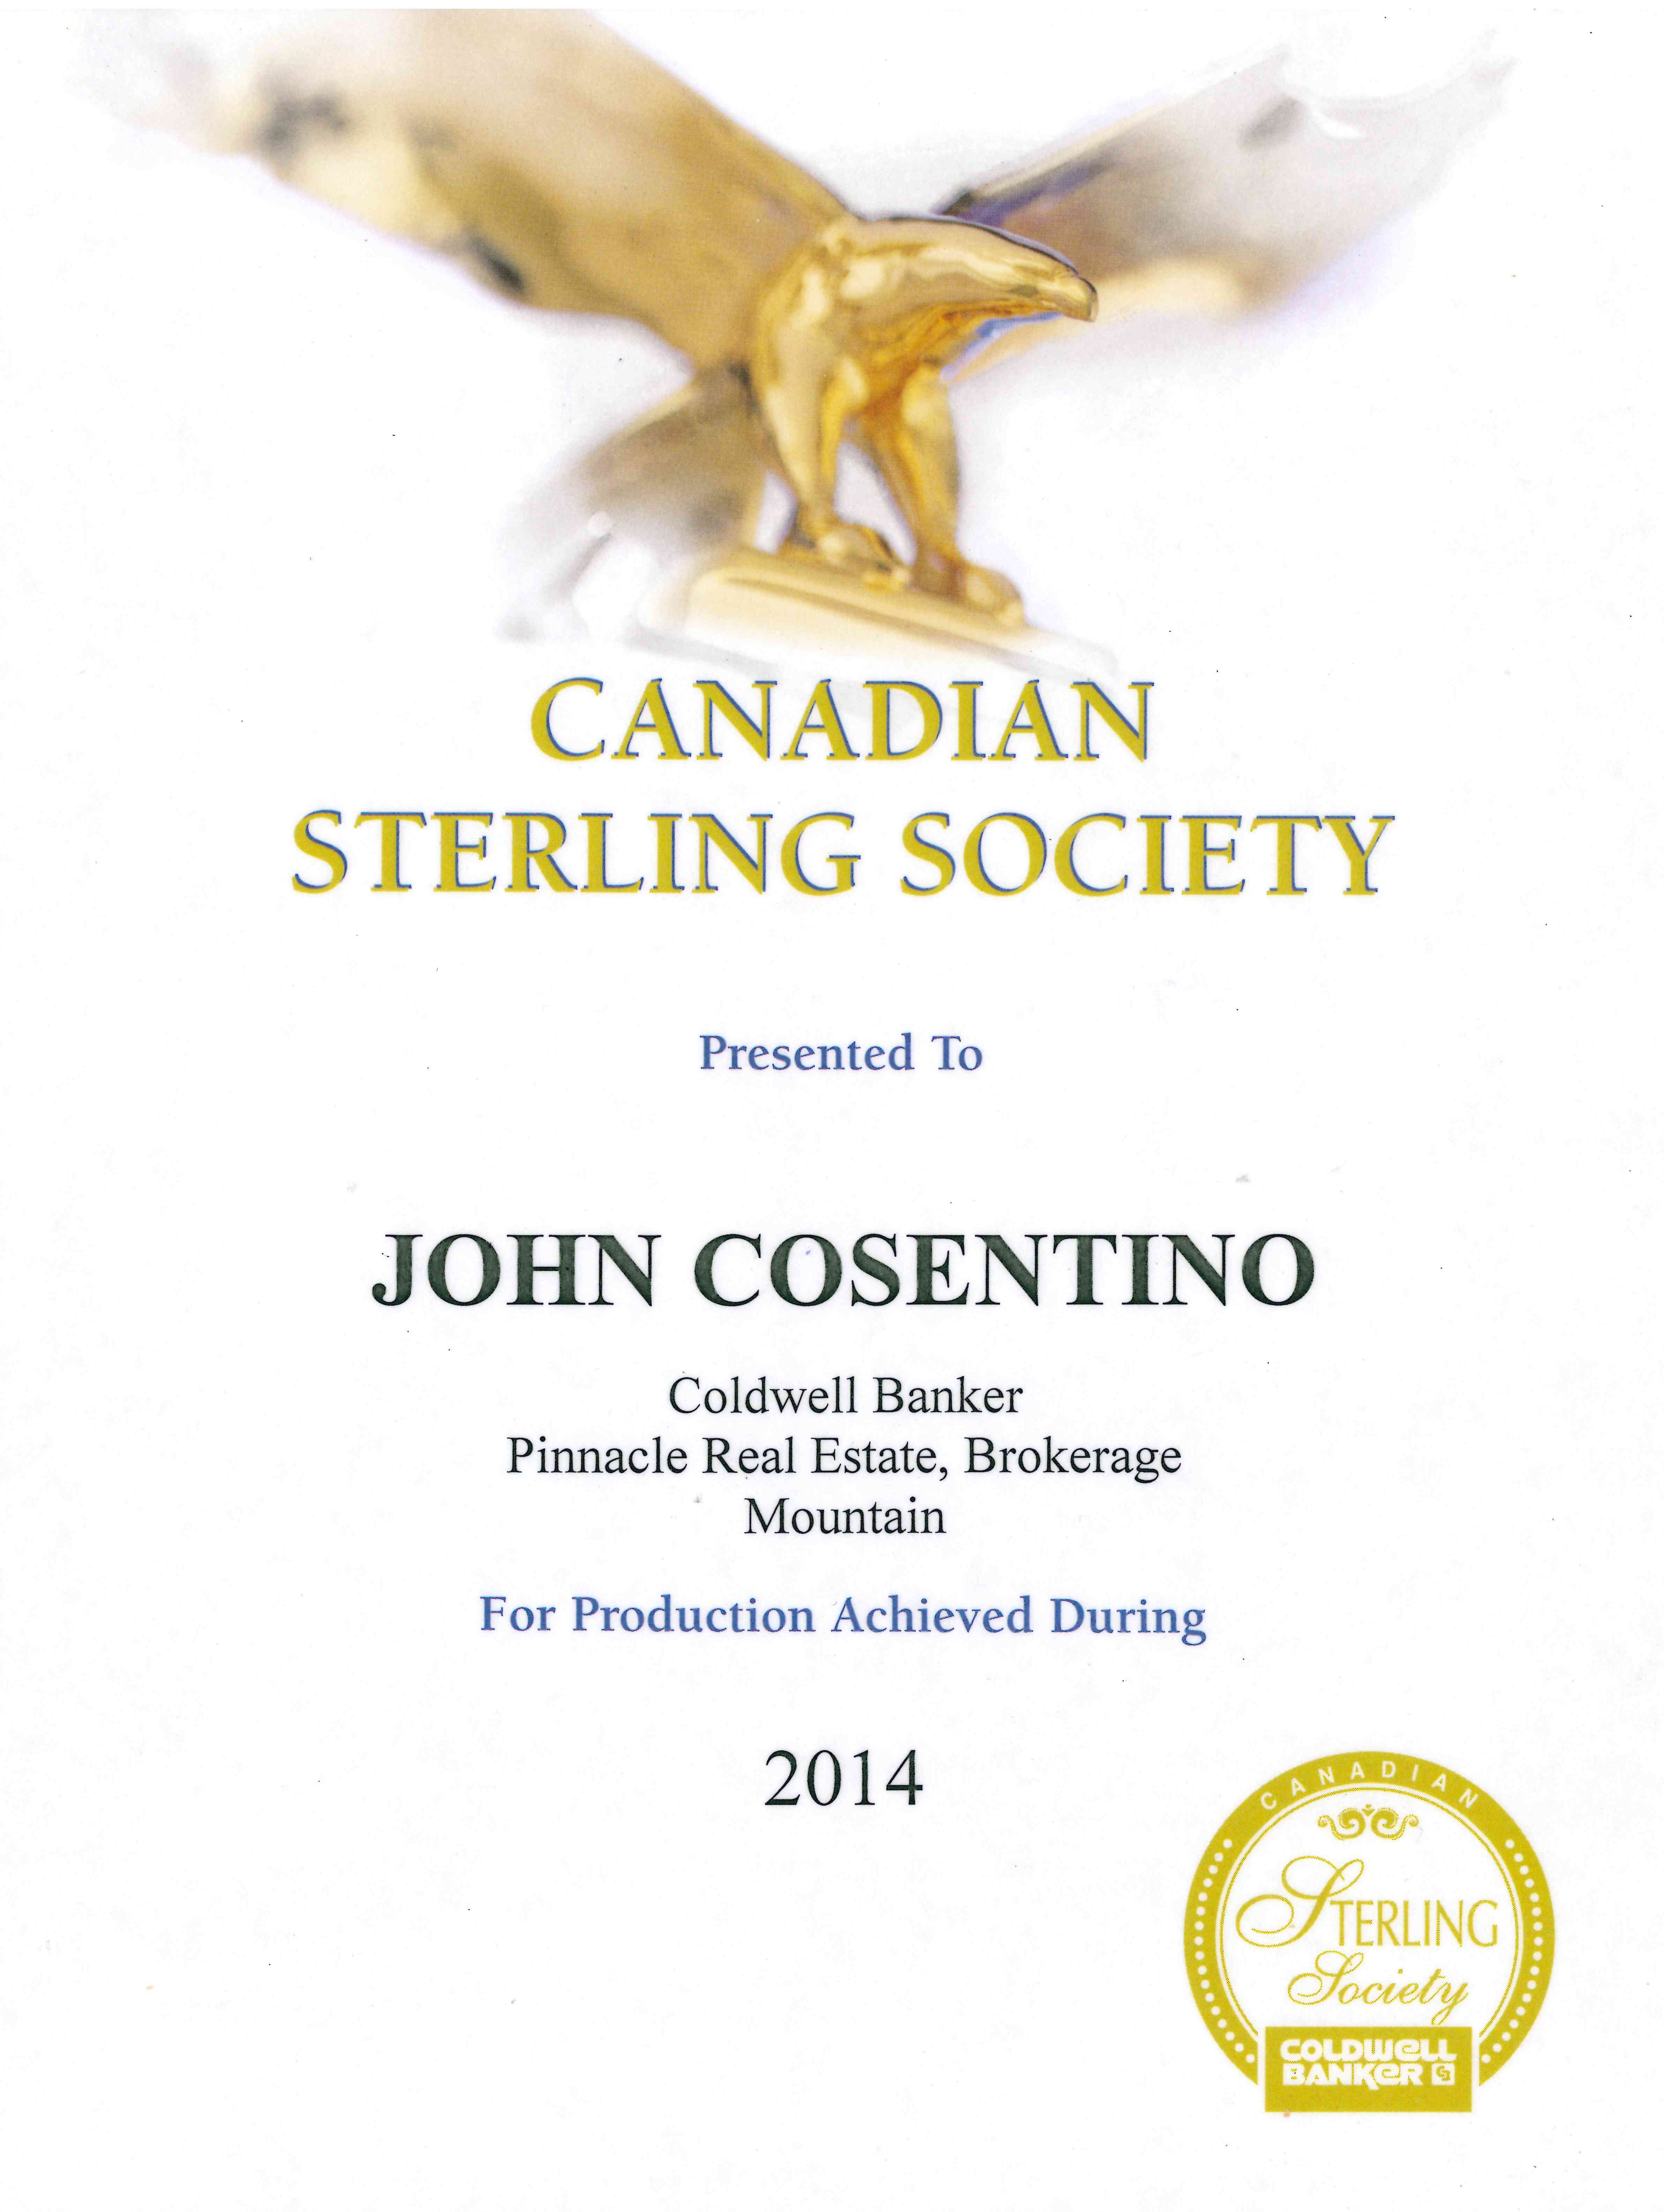 Canadian Sterling Award 2014